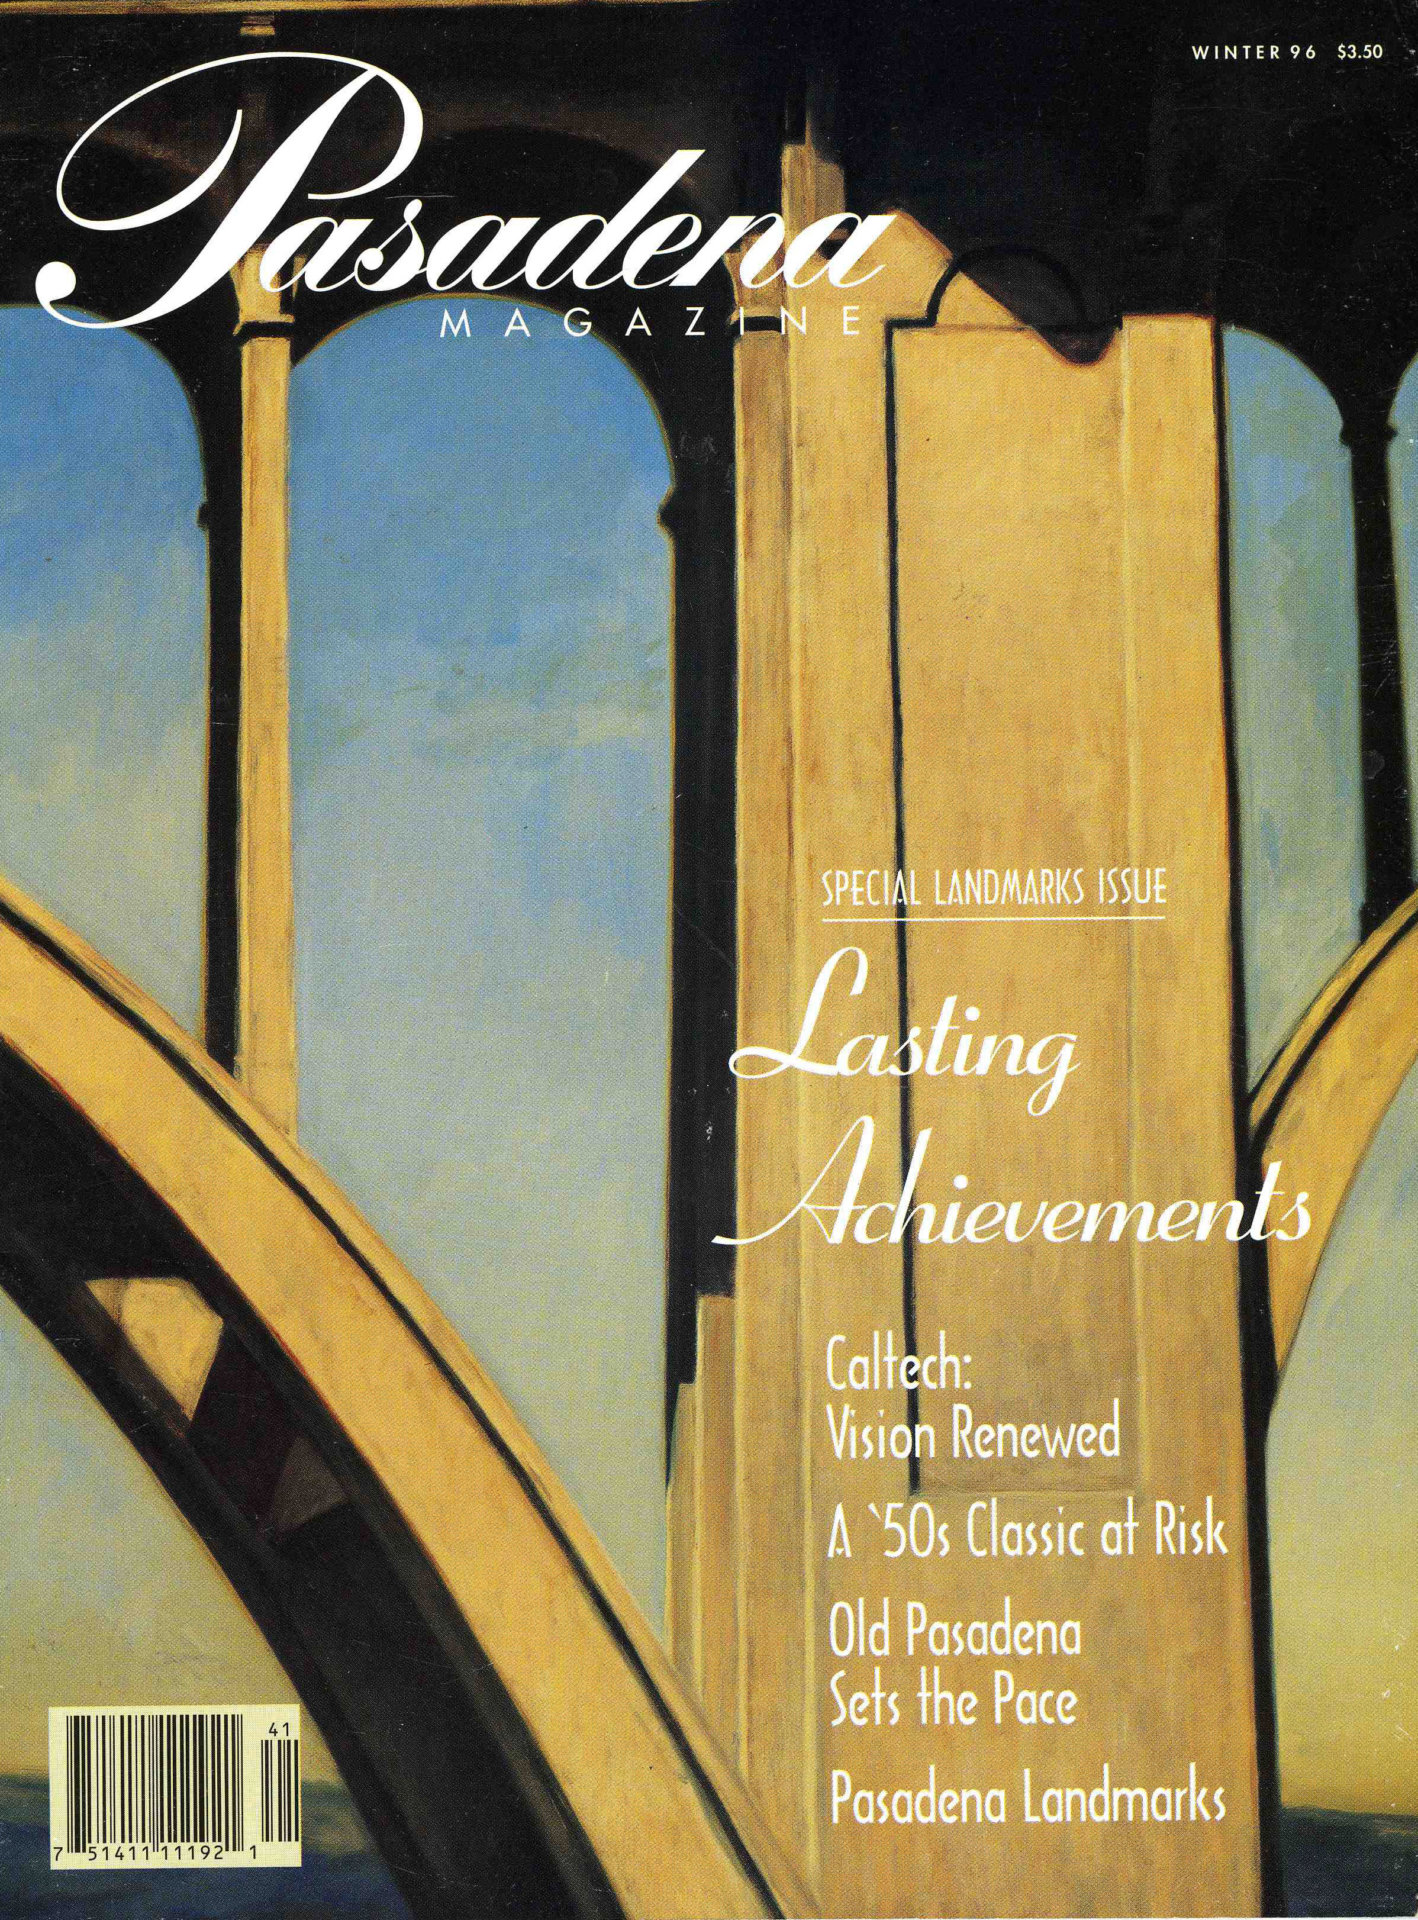 Artist Mark Beck's painting on the cover of Pasadena Magazine